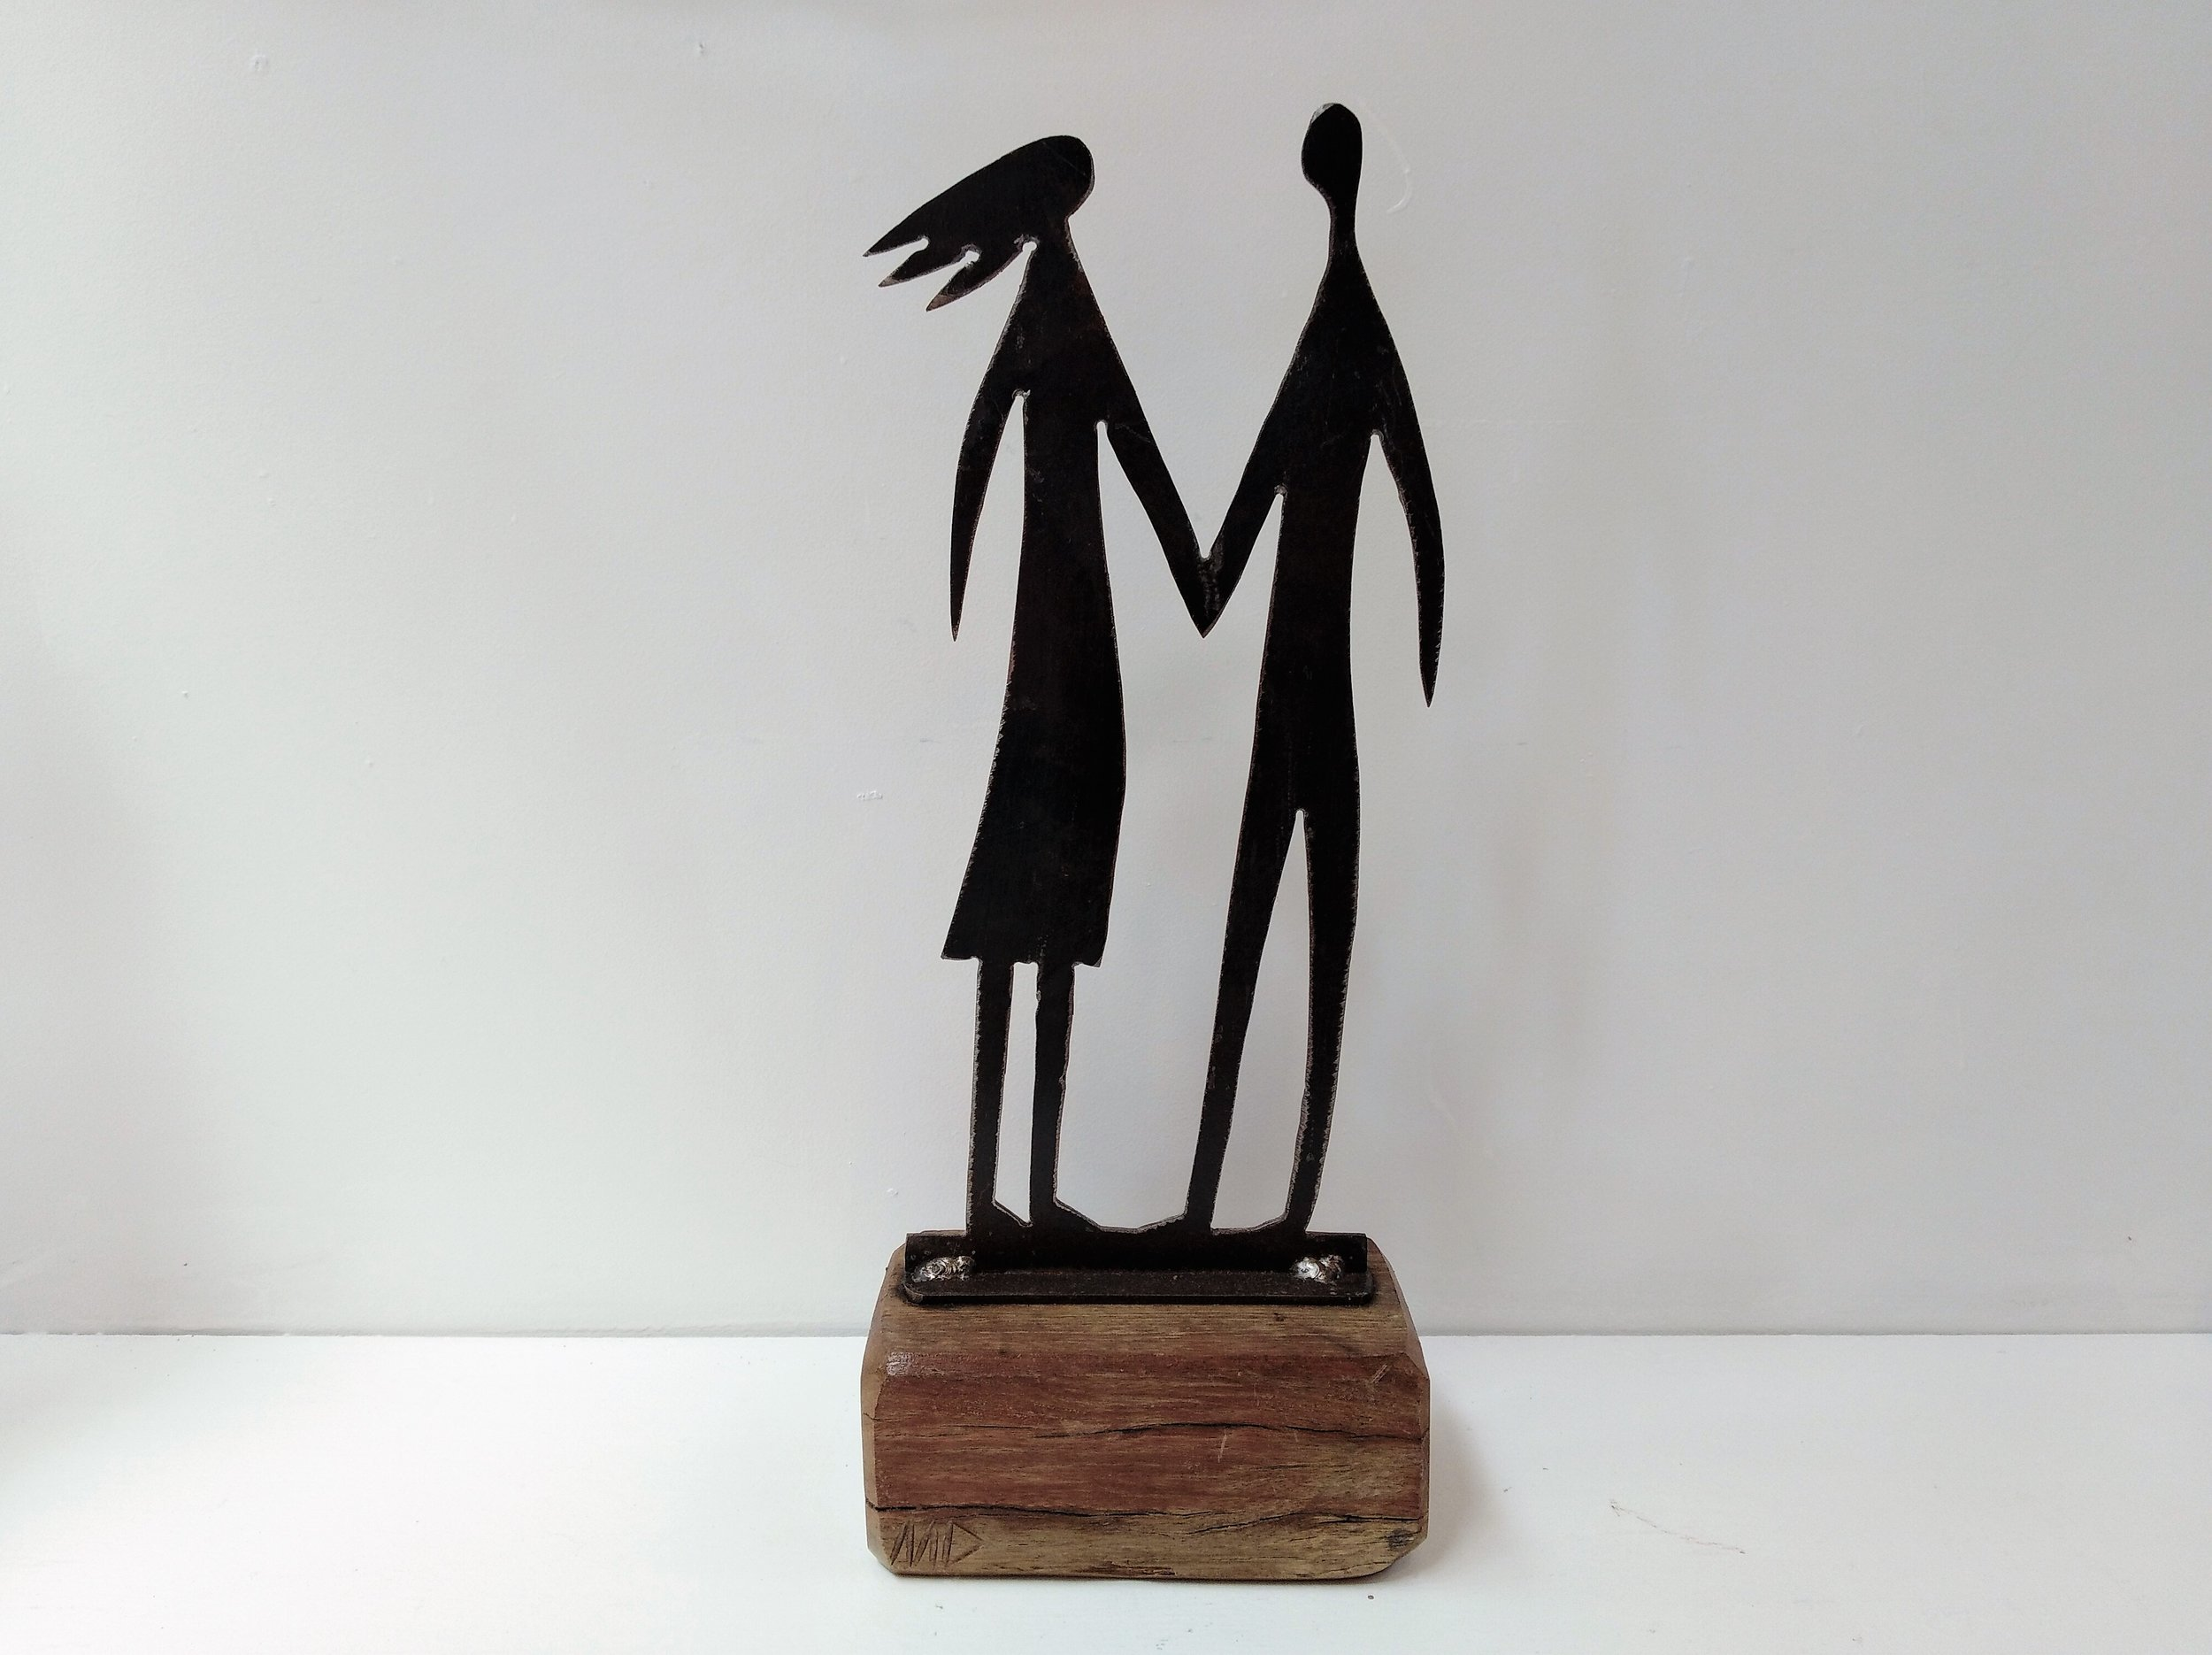 Medium Man & Woman - On the Beach Series  Mark Dimock, steel and wood sculpture, 430mm h  out of stock